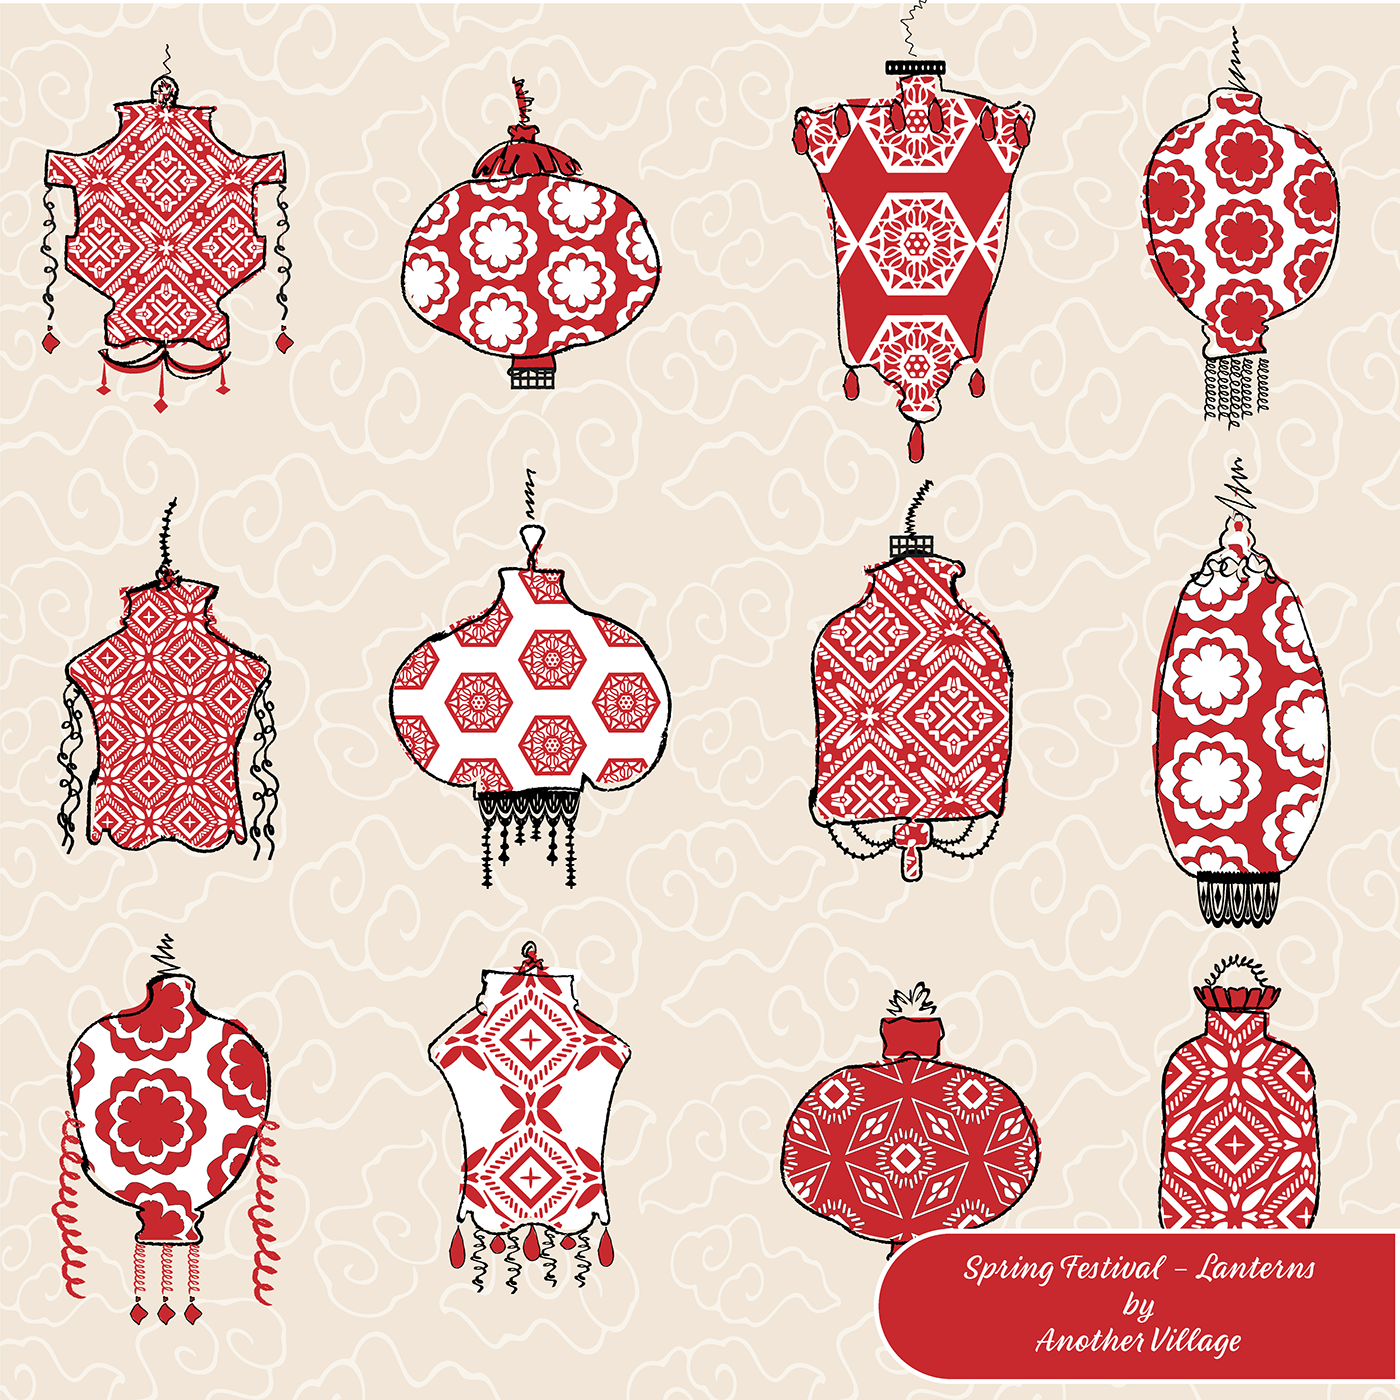 spring festival chinese new year lanterns and redwhite patterns